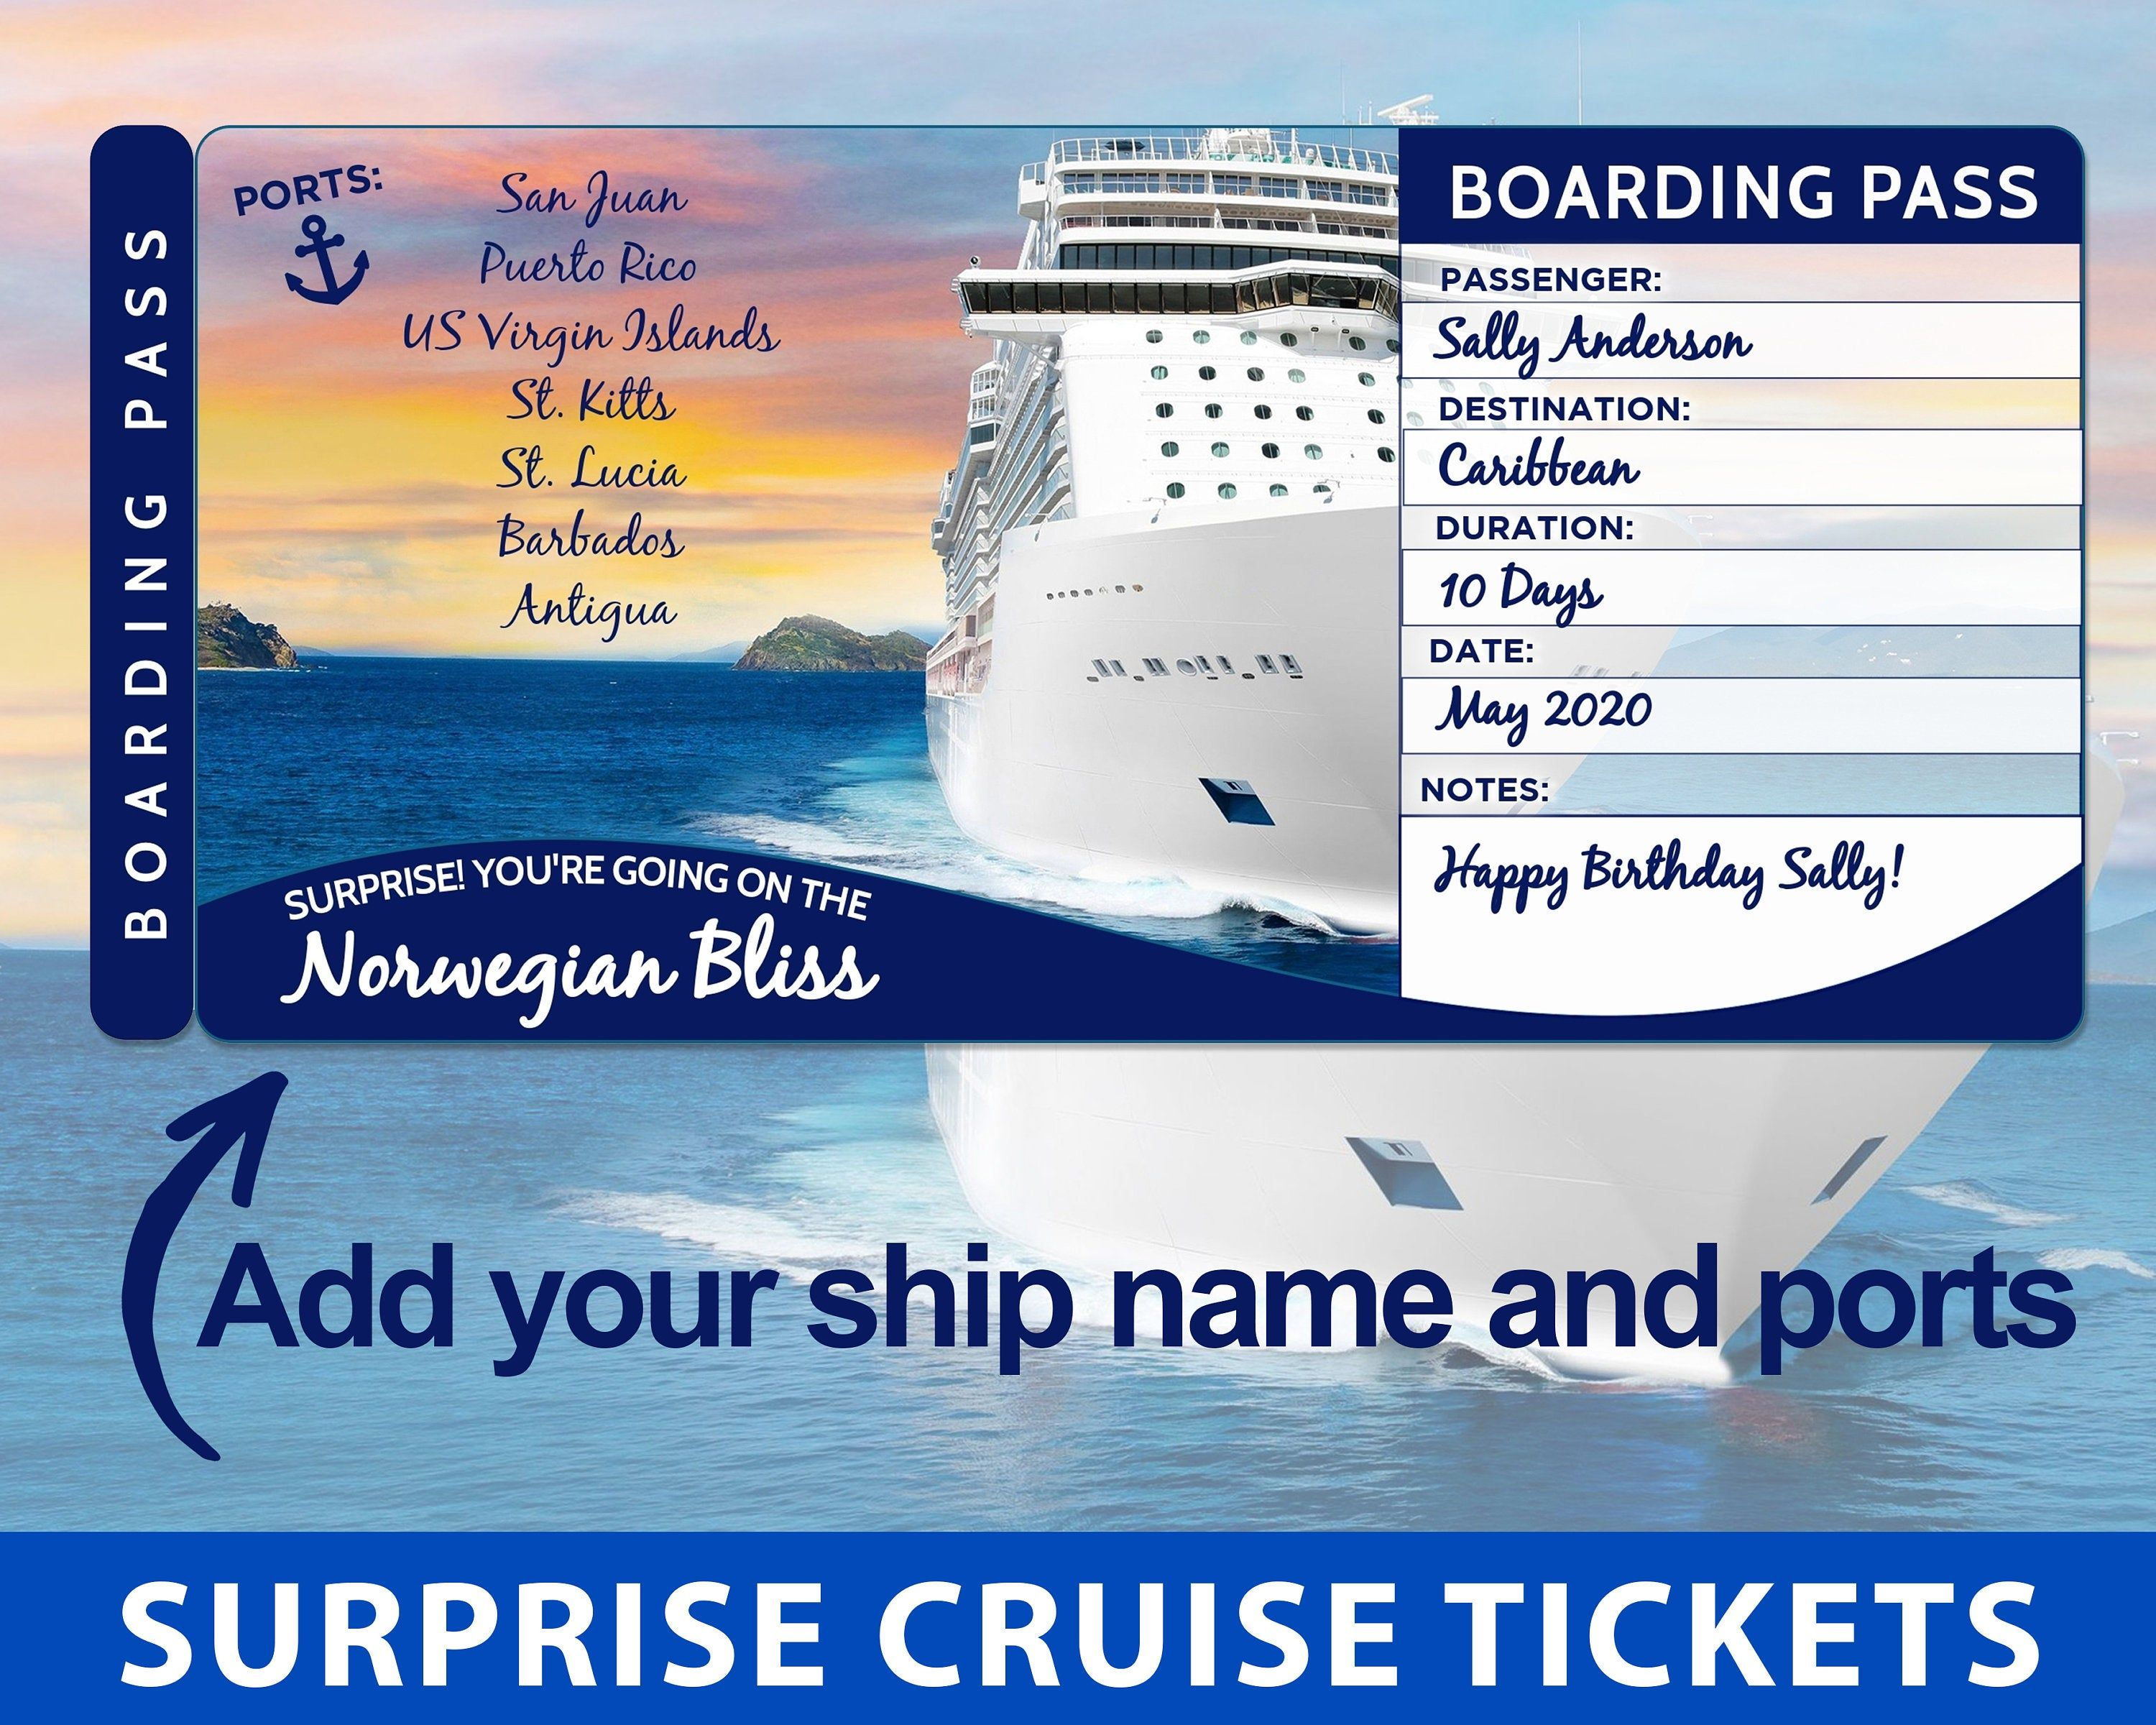 Surprise Cruise Boarding Pass Cruise Tickets Template Etsy Cruise Tickets Cruise Ticket Template